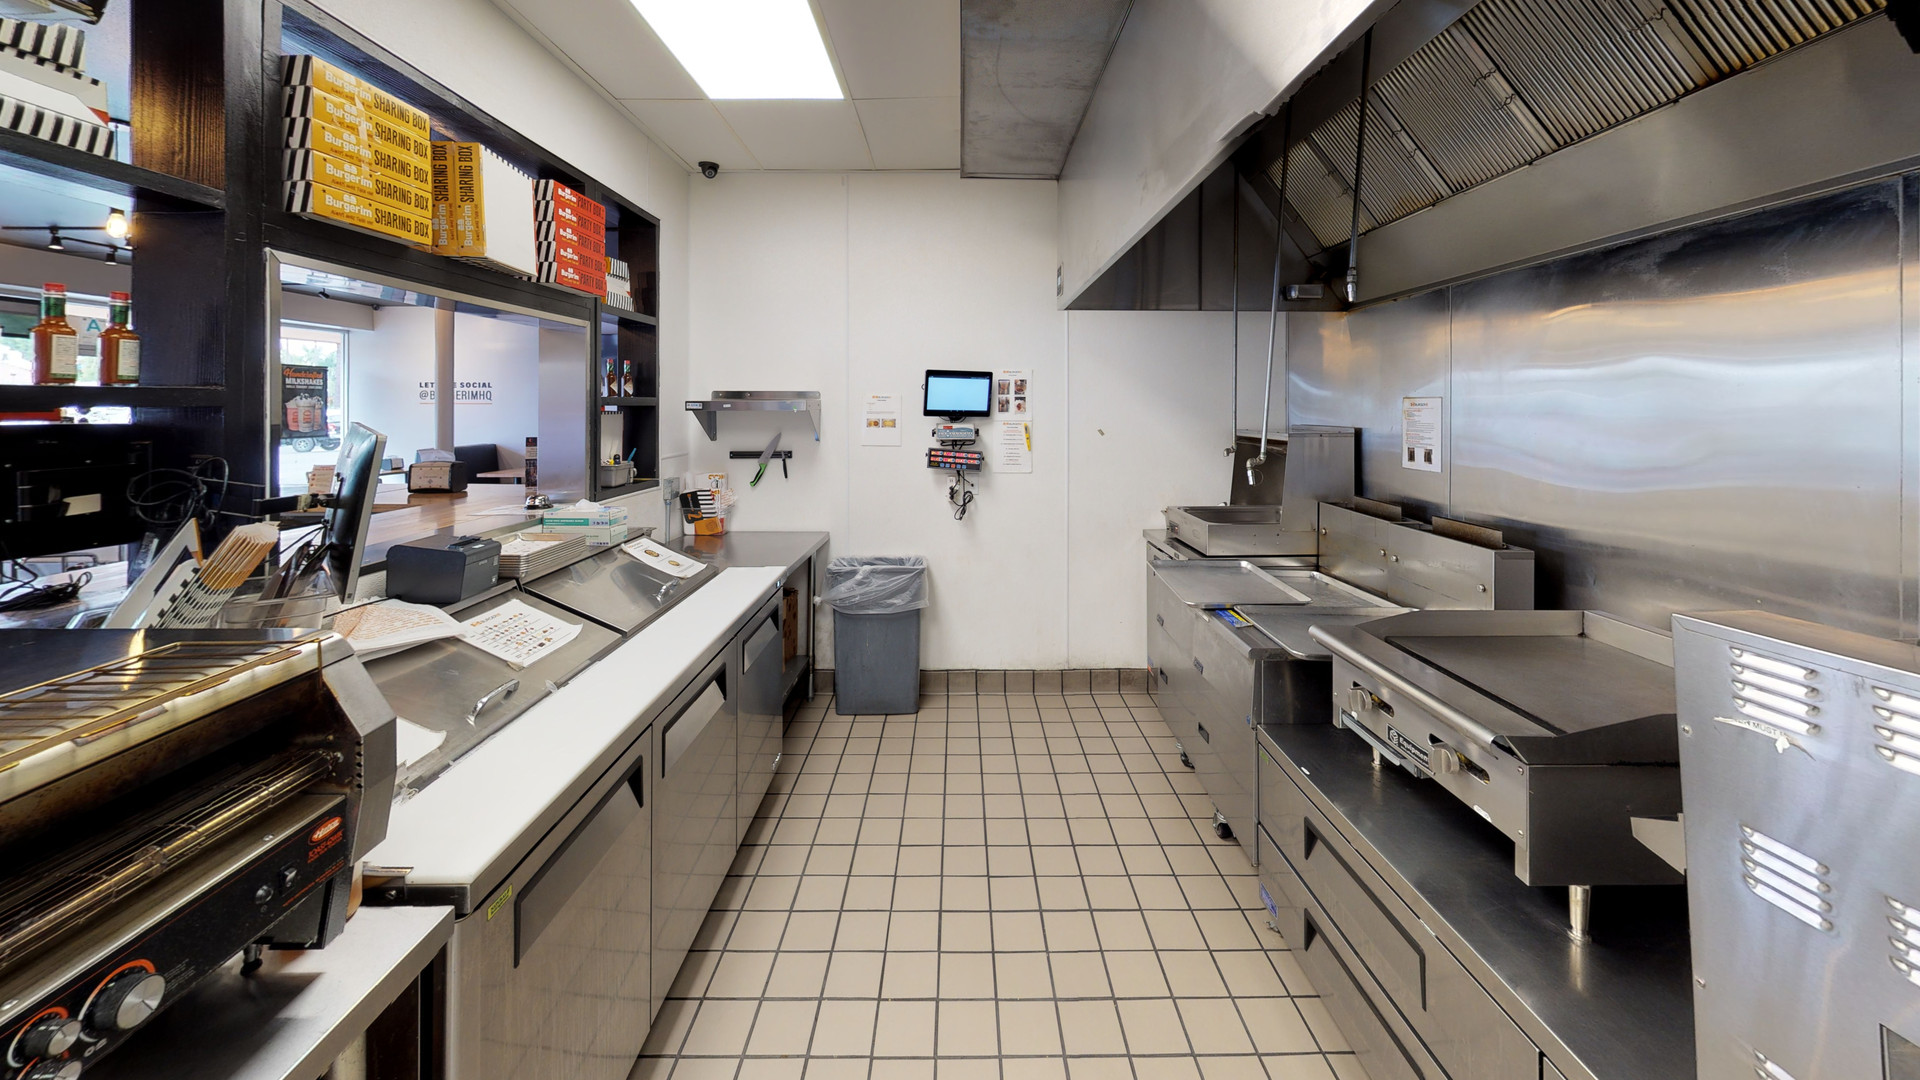 Burger-IM-South-Bay-Kitchen.jpg